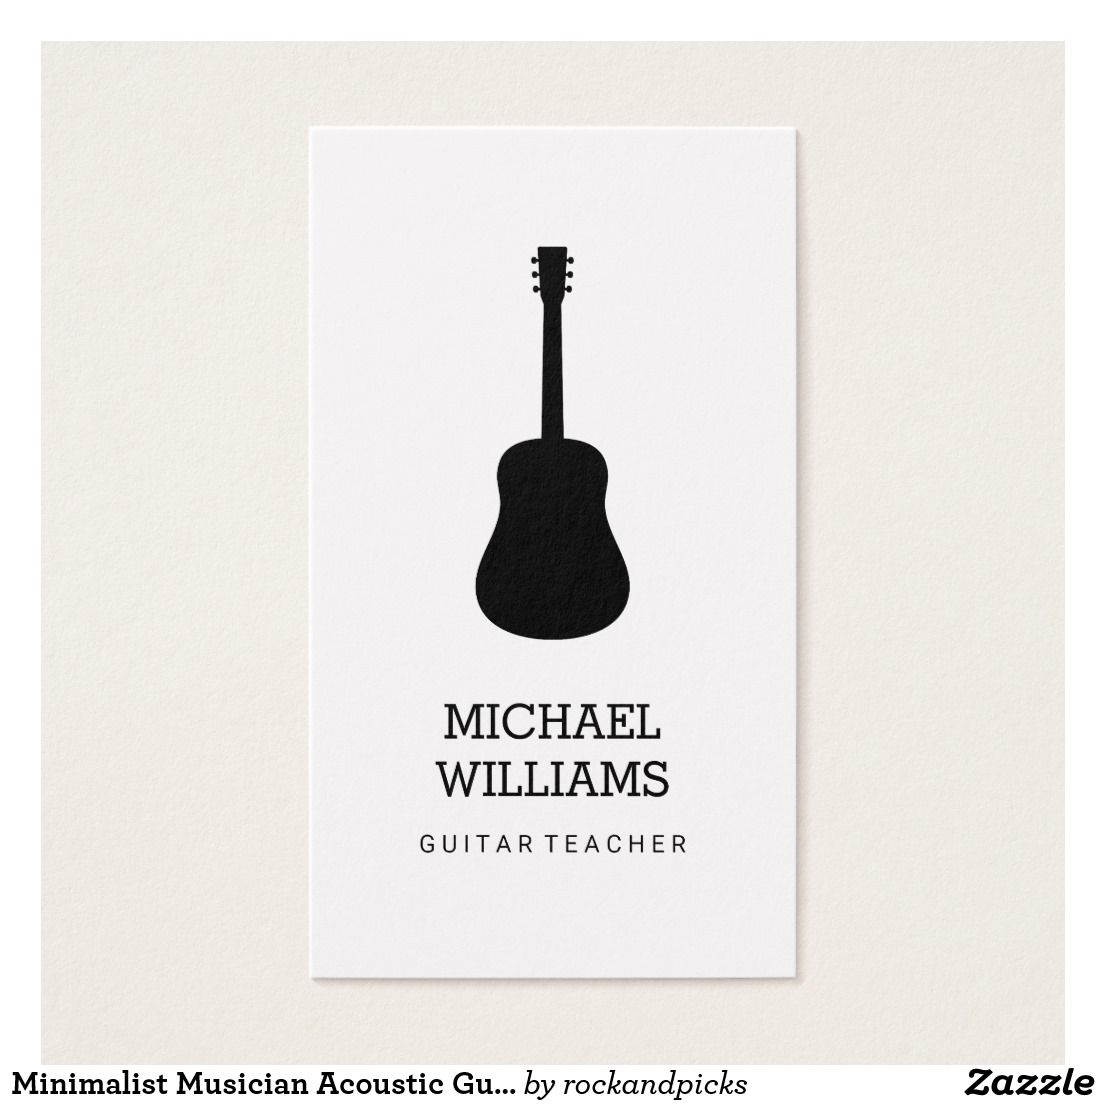 Minimalist Musician Acoustic Guitar Business Card | Business cards ...